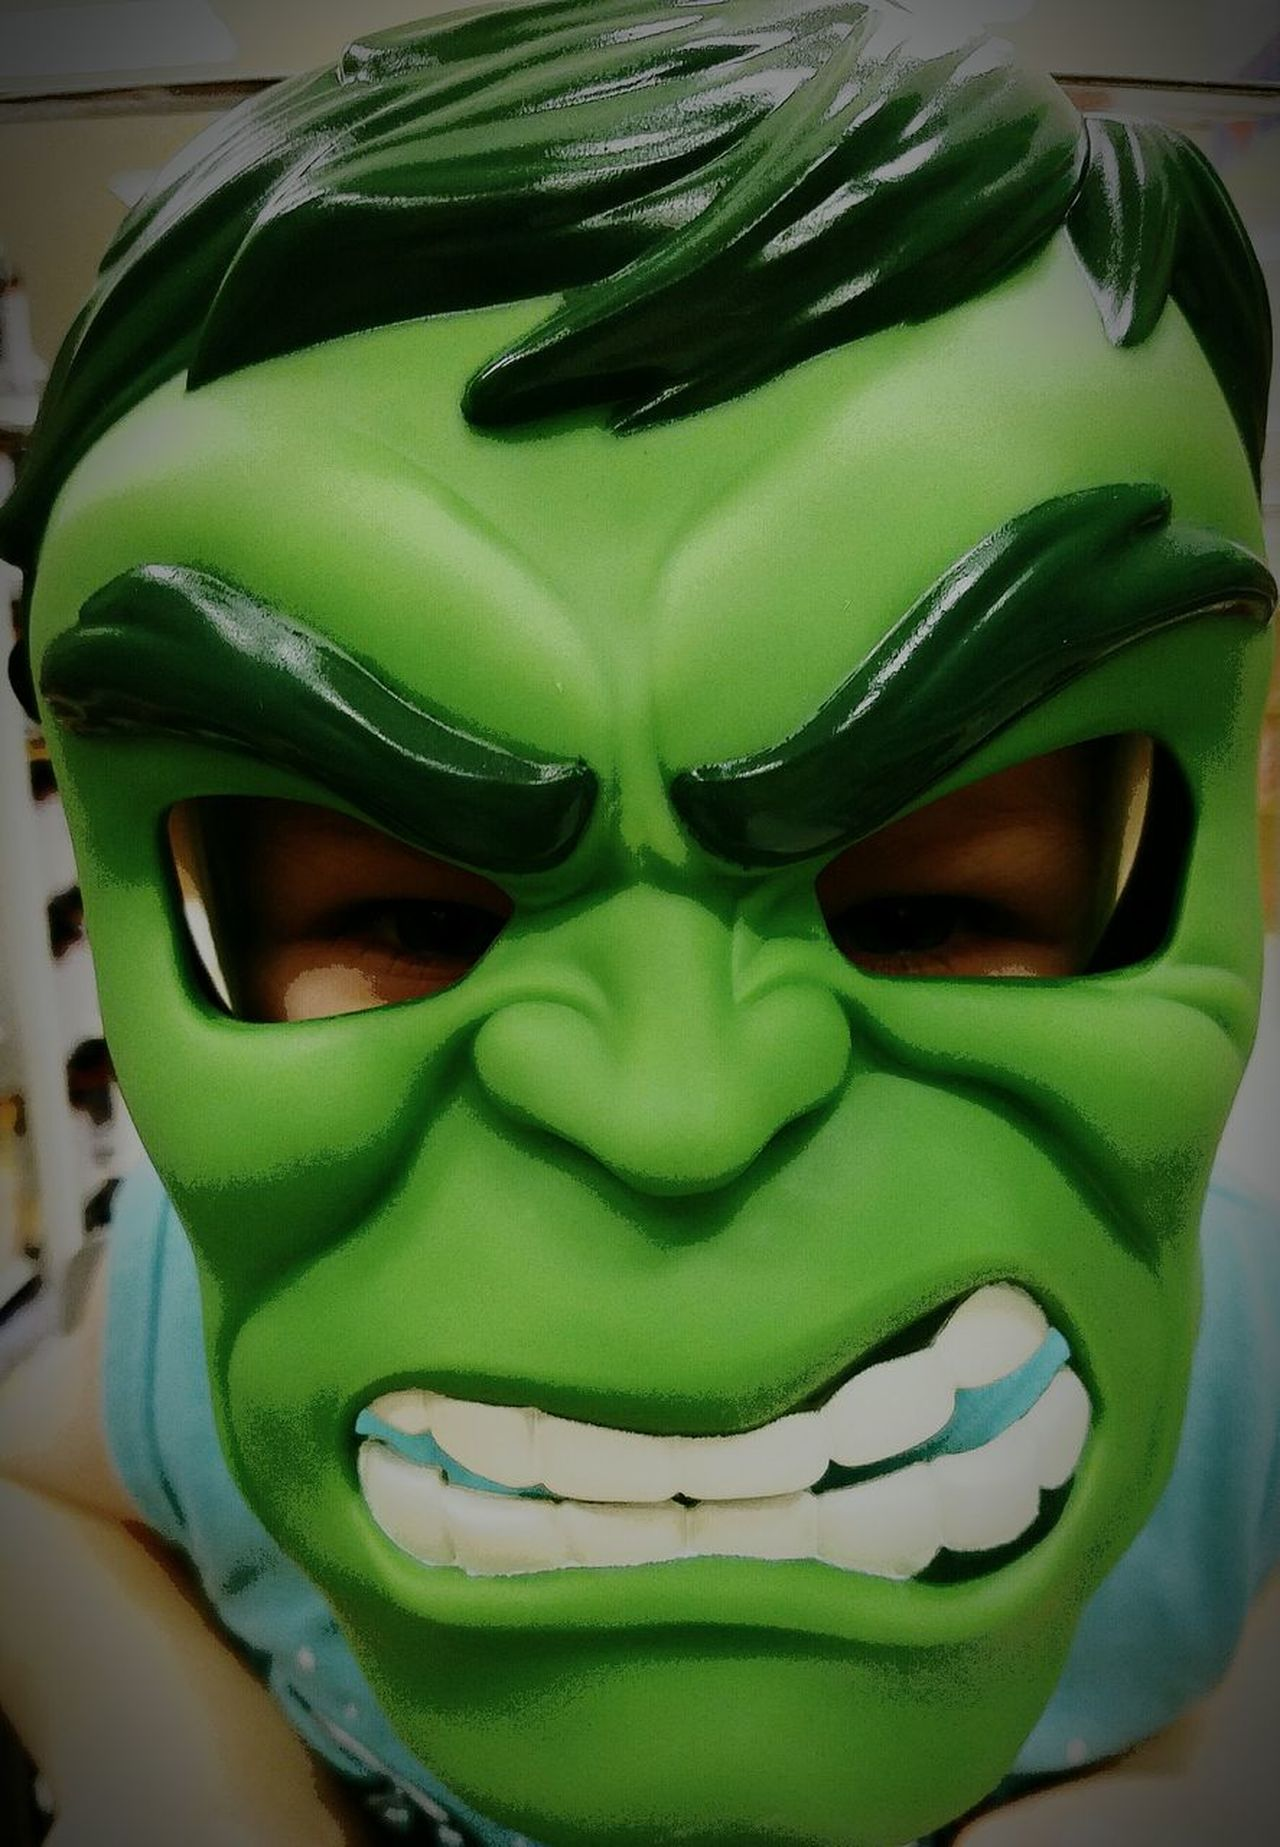 Green Color Indoors  Headwear Close-up My Little Hulk Fun With My Son South Dakota. Sioux Falls Just Mommin Cartoonized Cartoon Style Headshot One Person Sioux Falls Adventures Super Heroes  Obsessed Boys Will Be Boys!  Having A Blast With My Munchkin